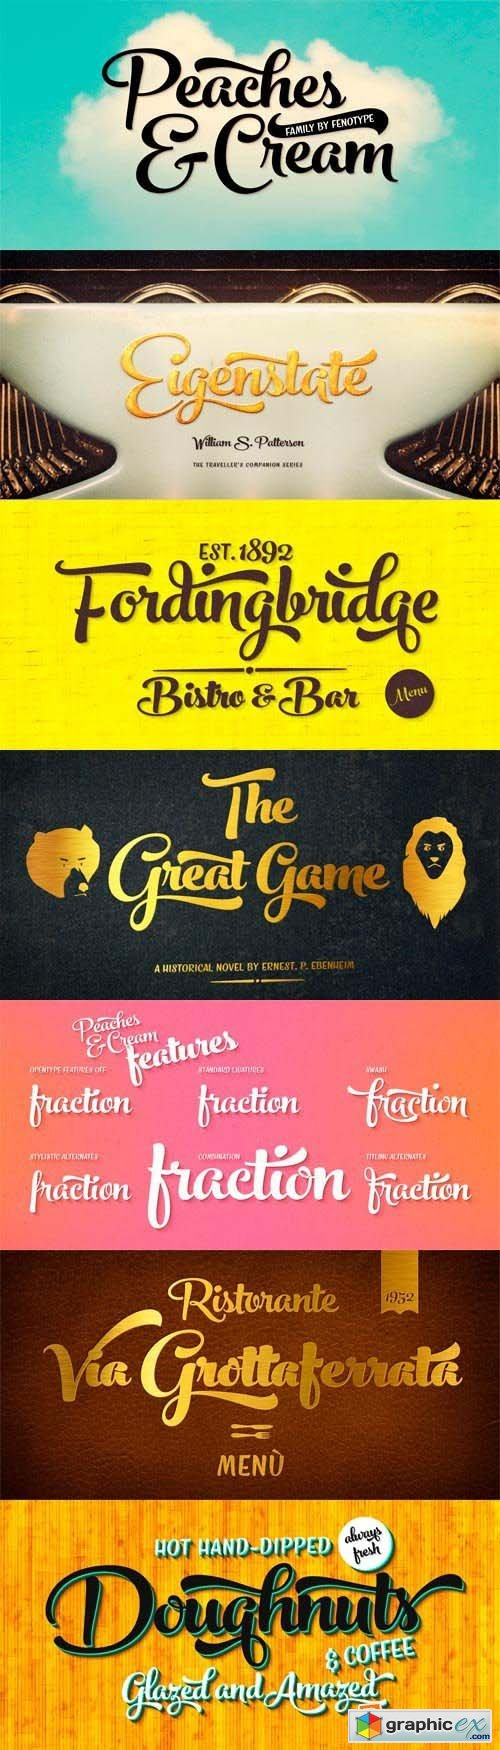 Peaches and Cream Font Family - 5 Fonts for $65